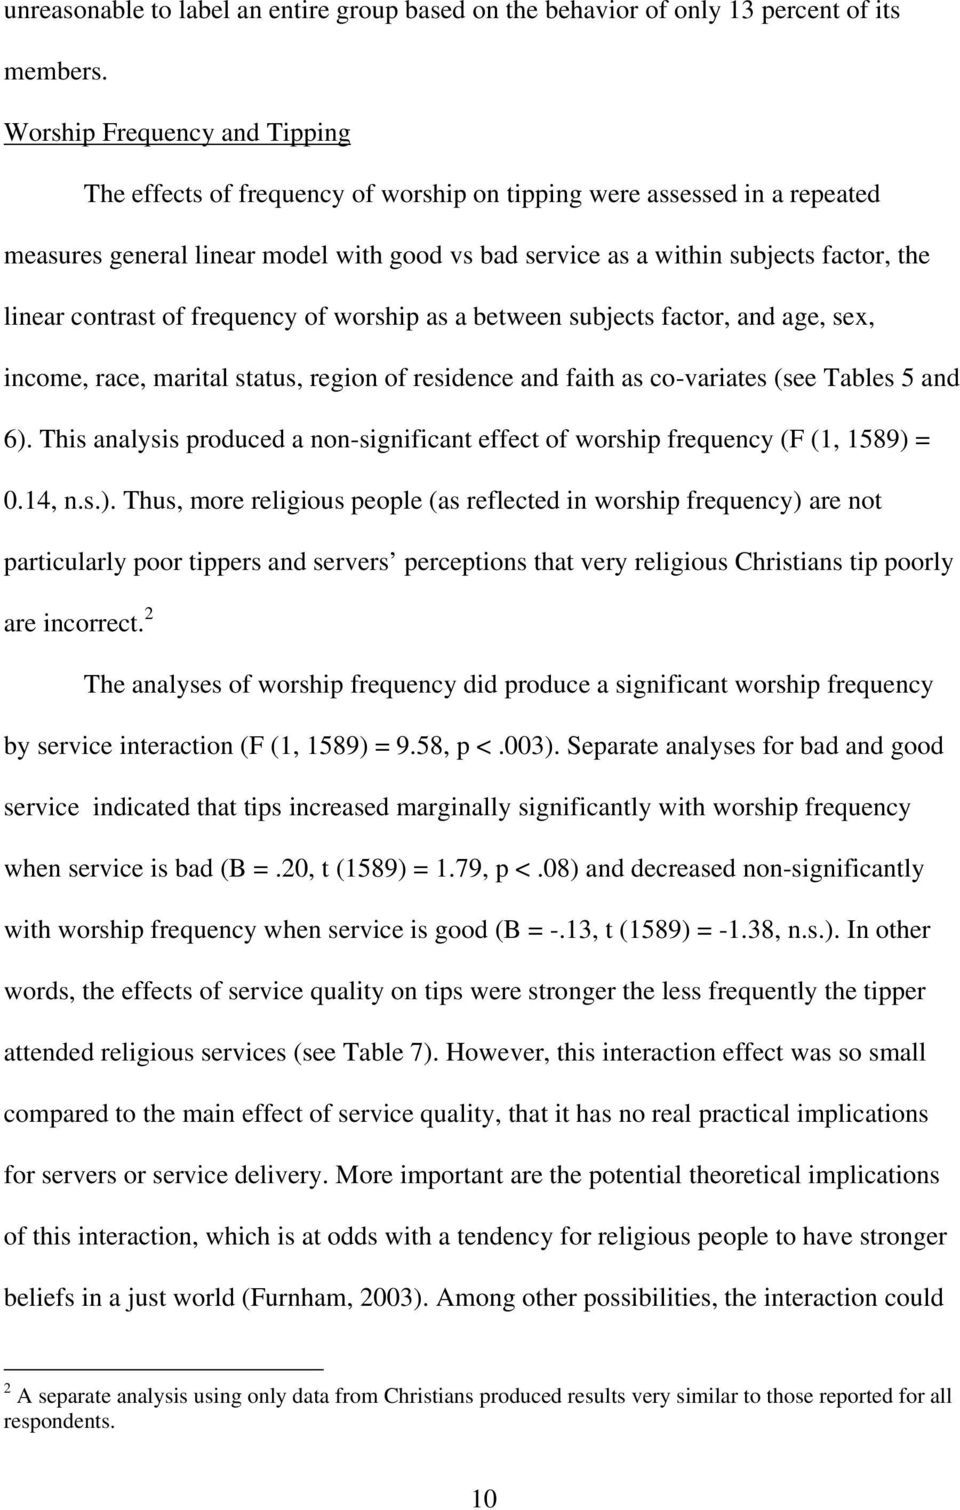 contrast of frequency of worship as a between subjects factor, and age, sex, income, race, marital status, region of residence and faith as co-variates (see Tables 5 and 6).